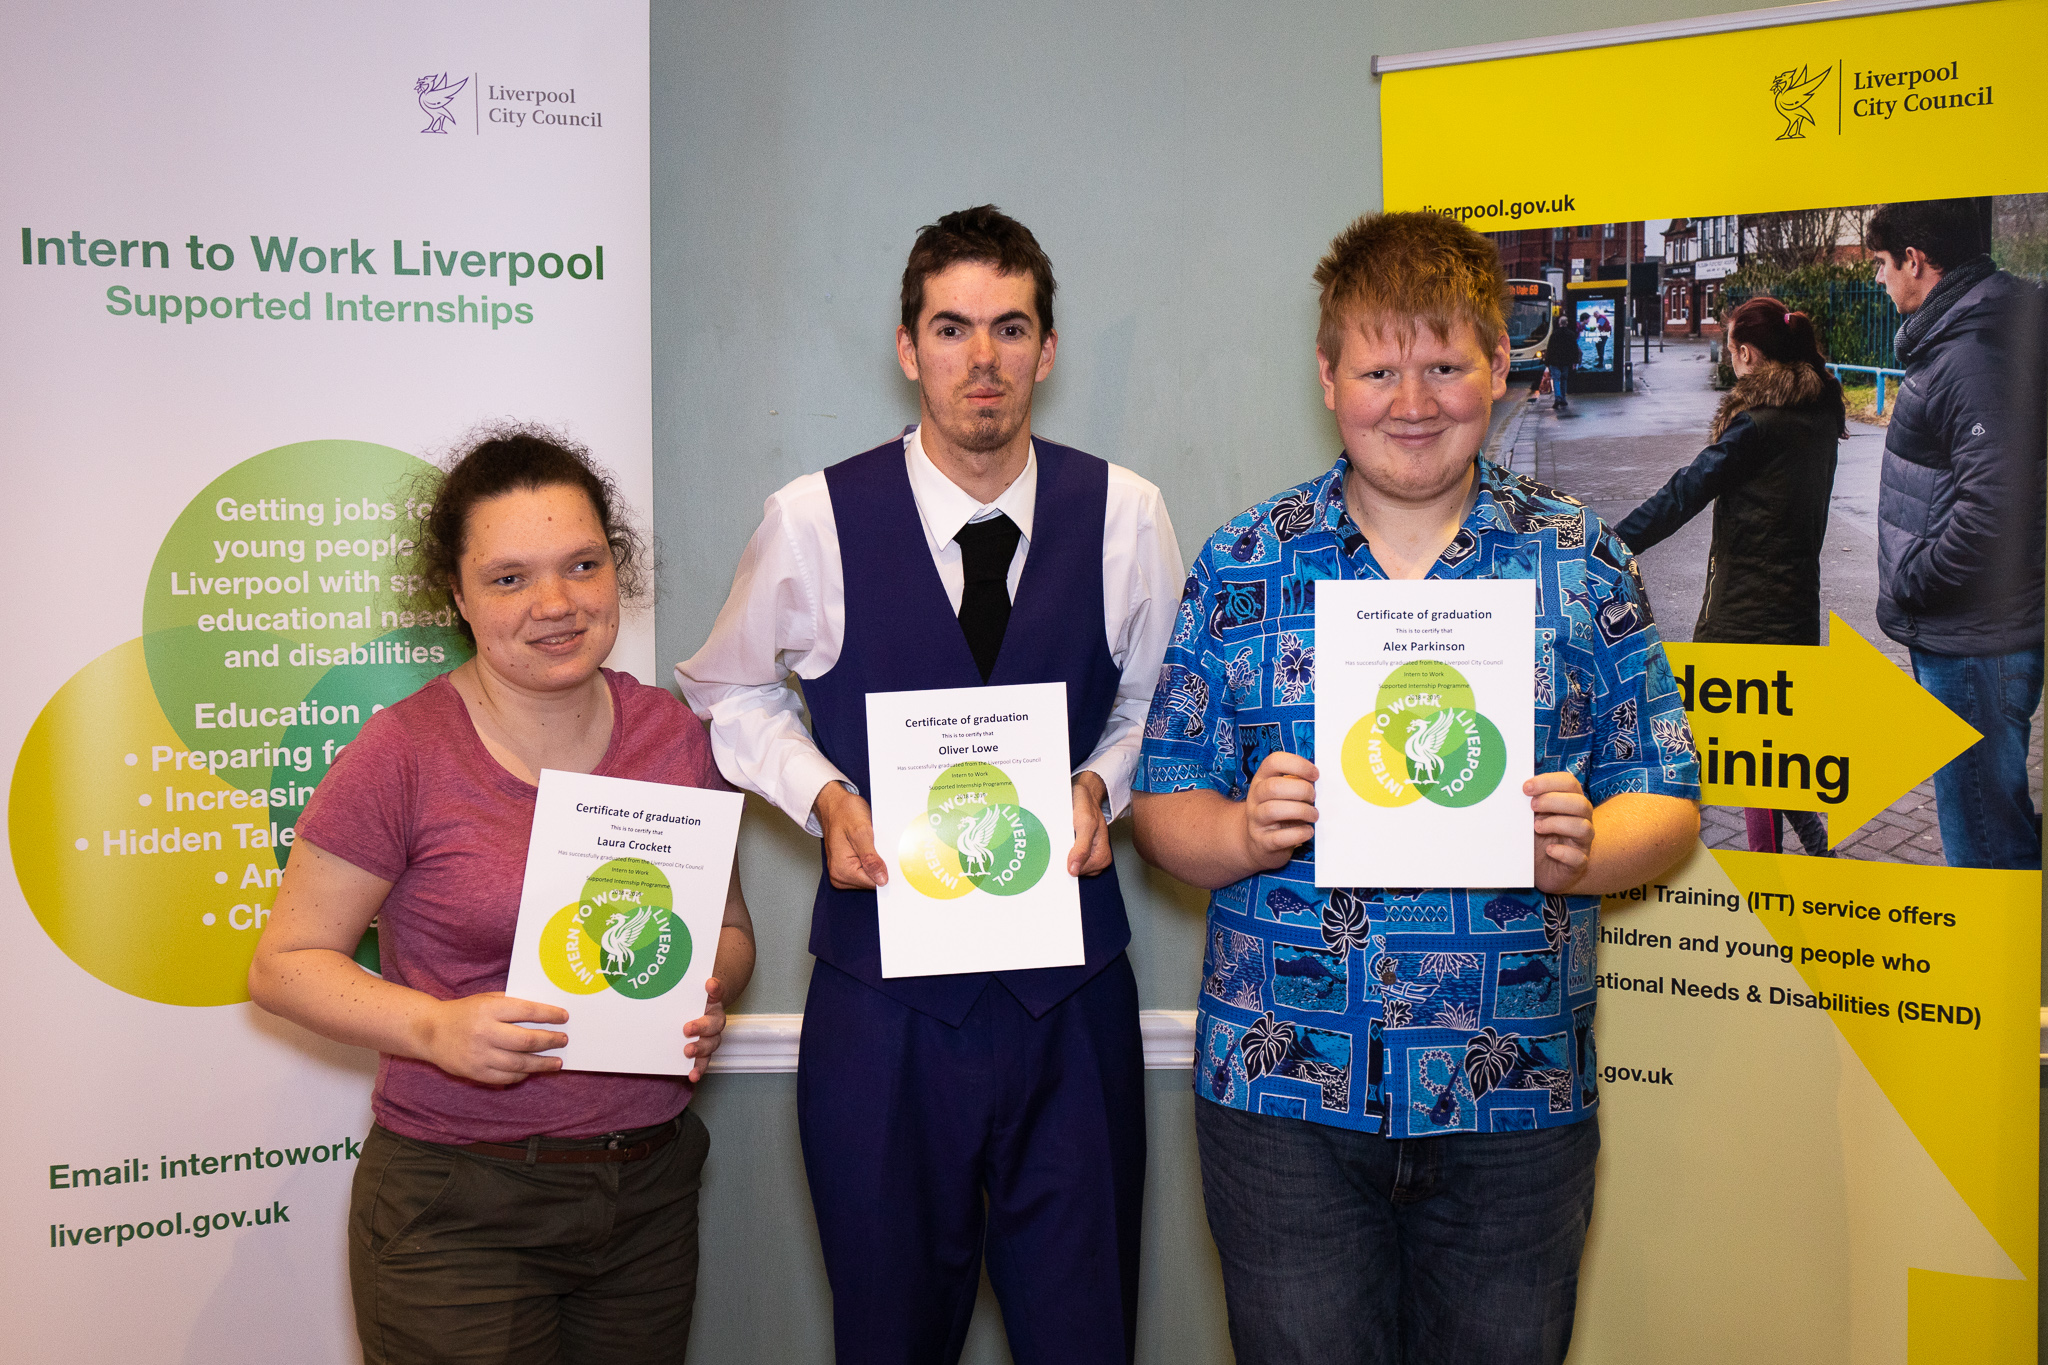 Laura, Oliver and Alex, supported interns from Myerscough College based at Croxteth Hall and Walton Hall Gardens.